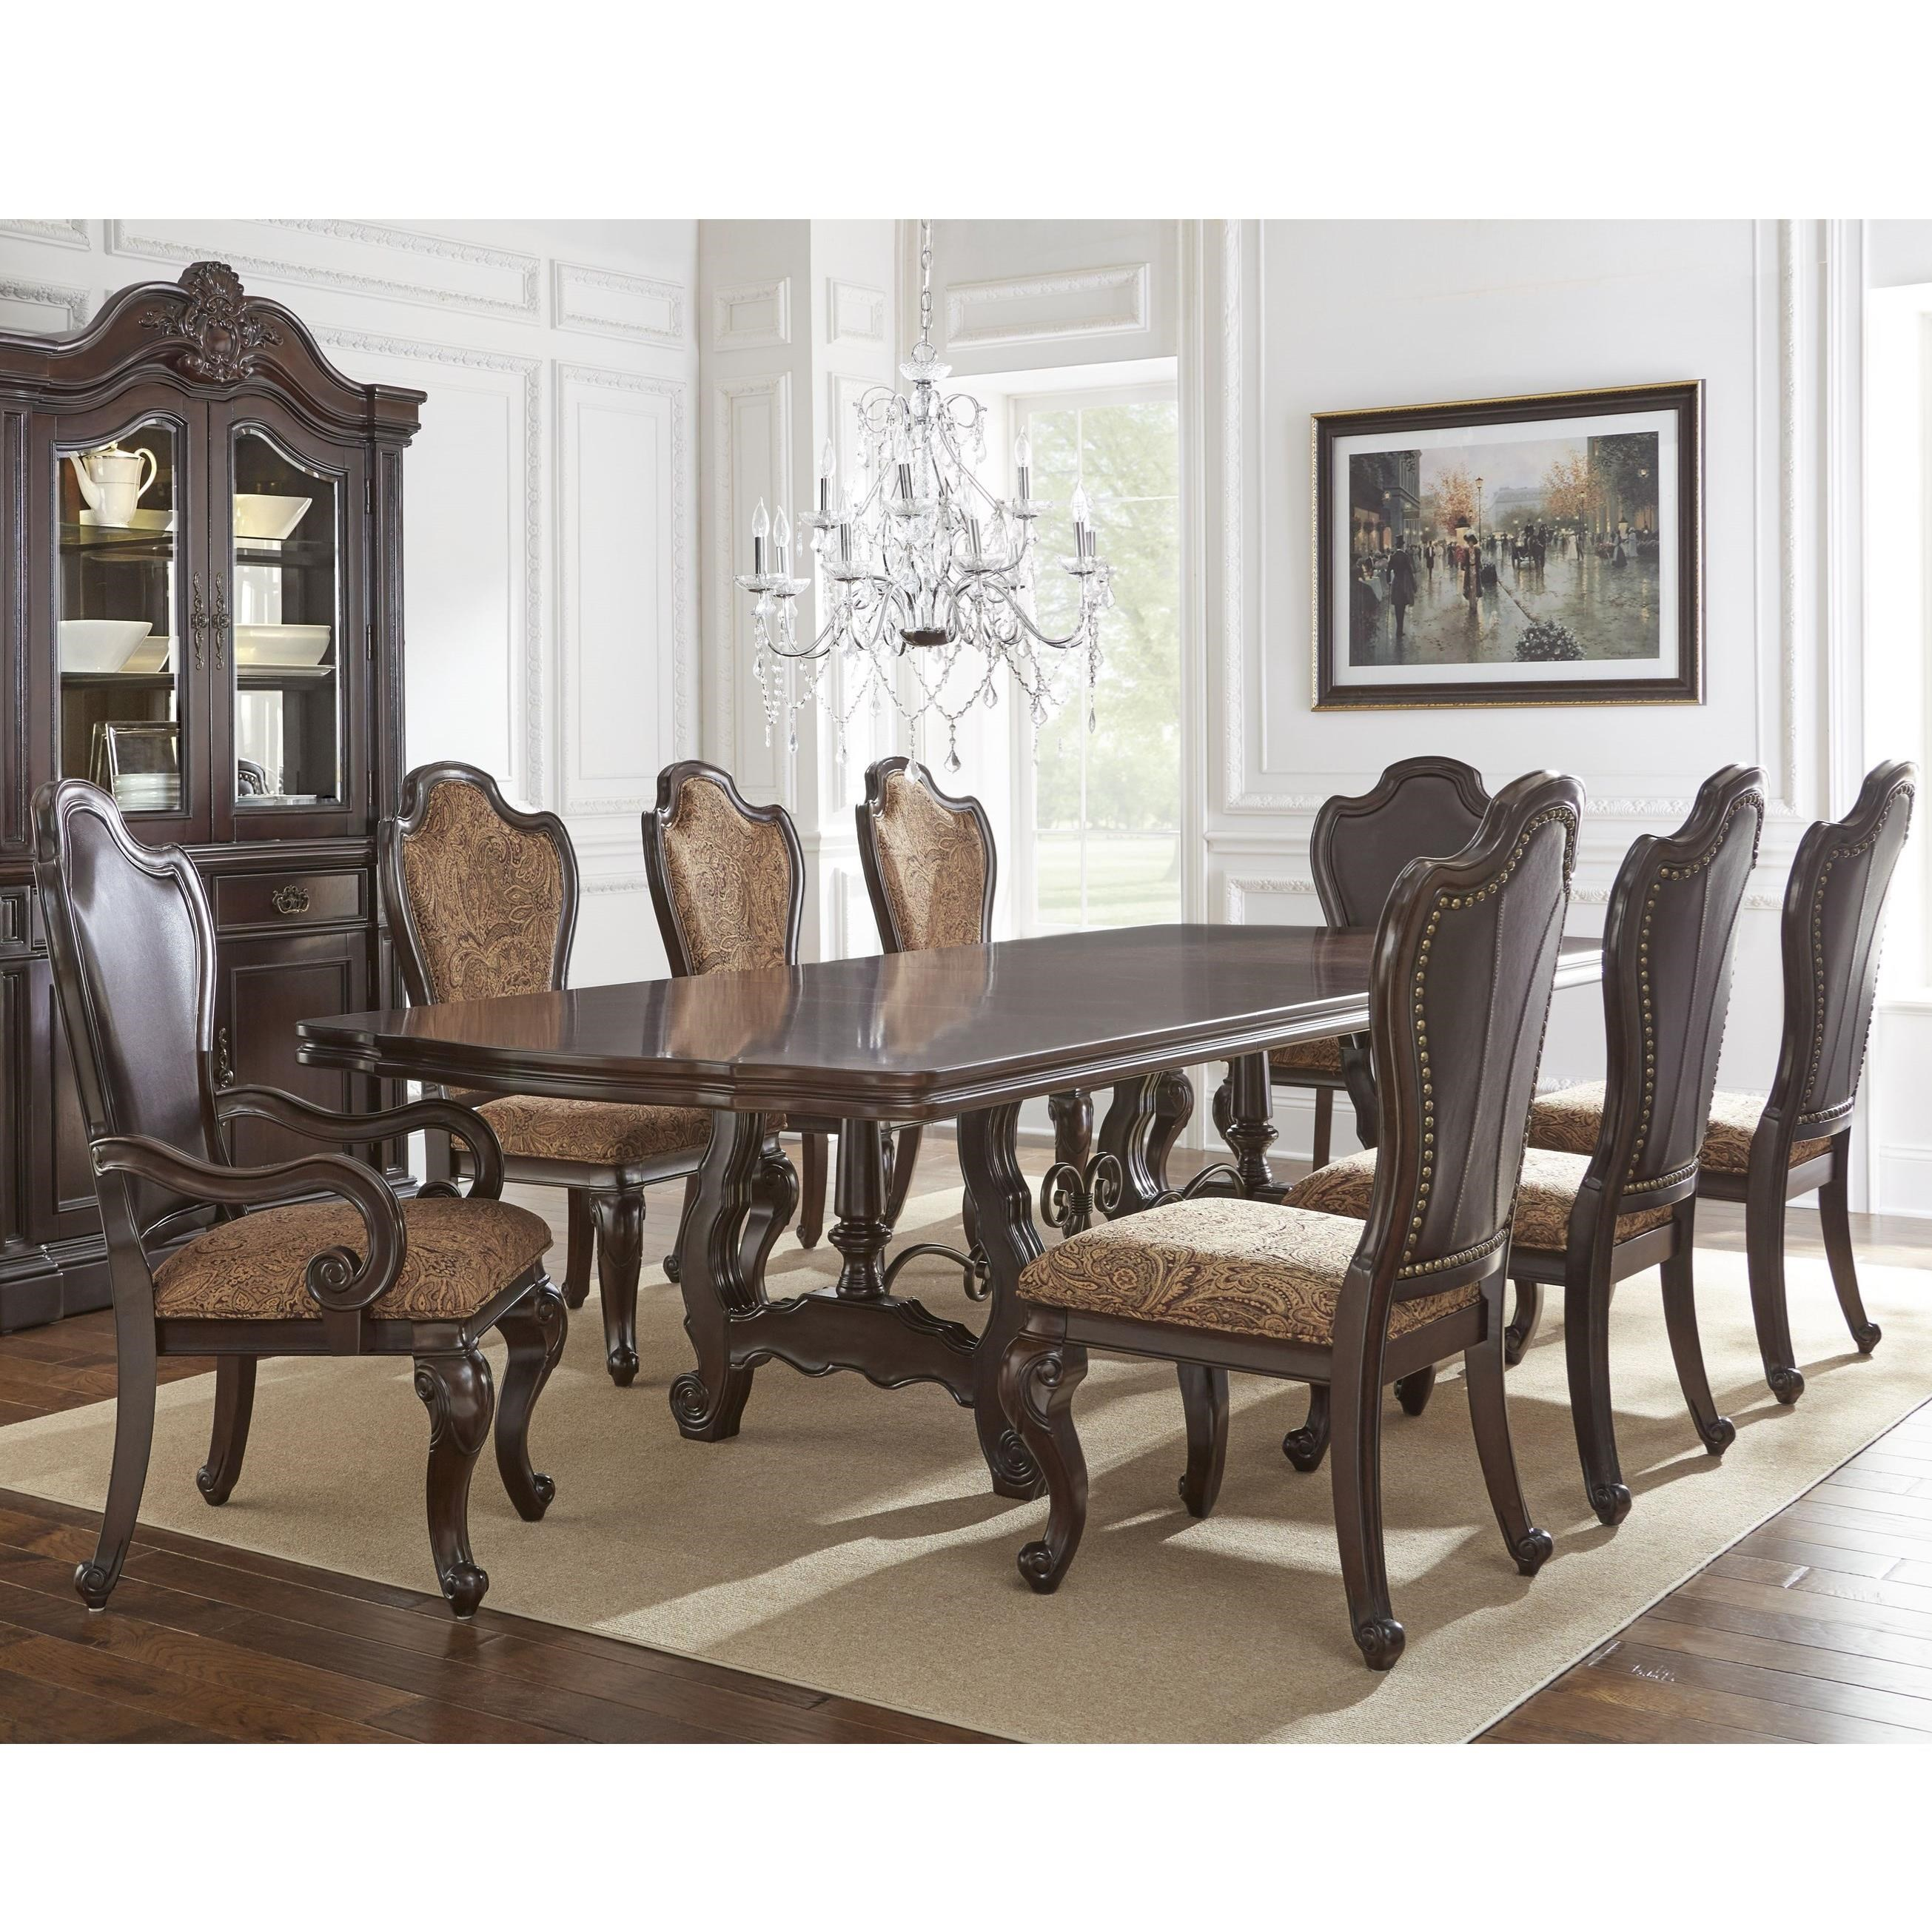 Steve Silver Angelina 9 Piece Traditional Dining Set Wayside